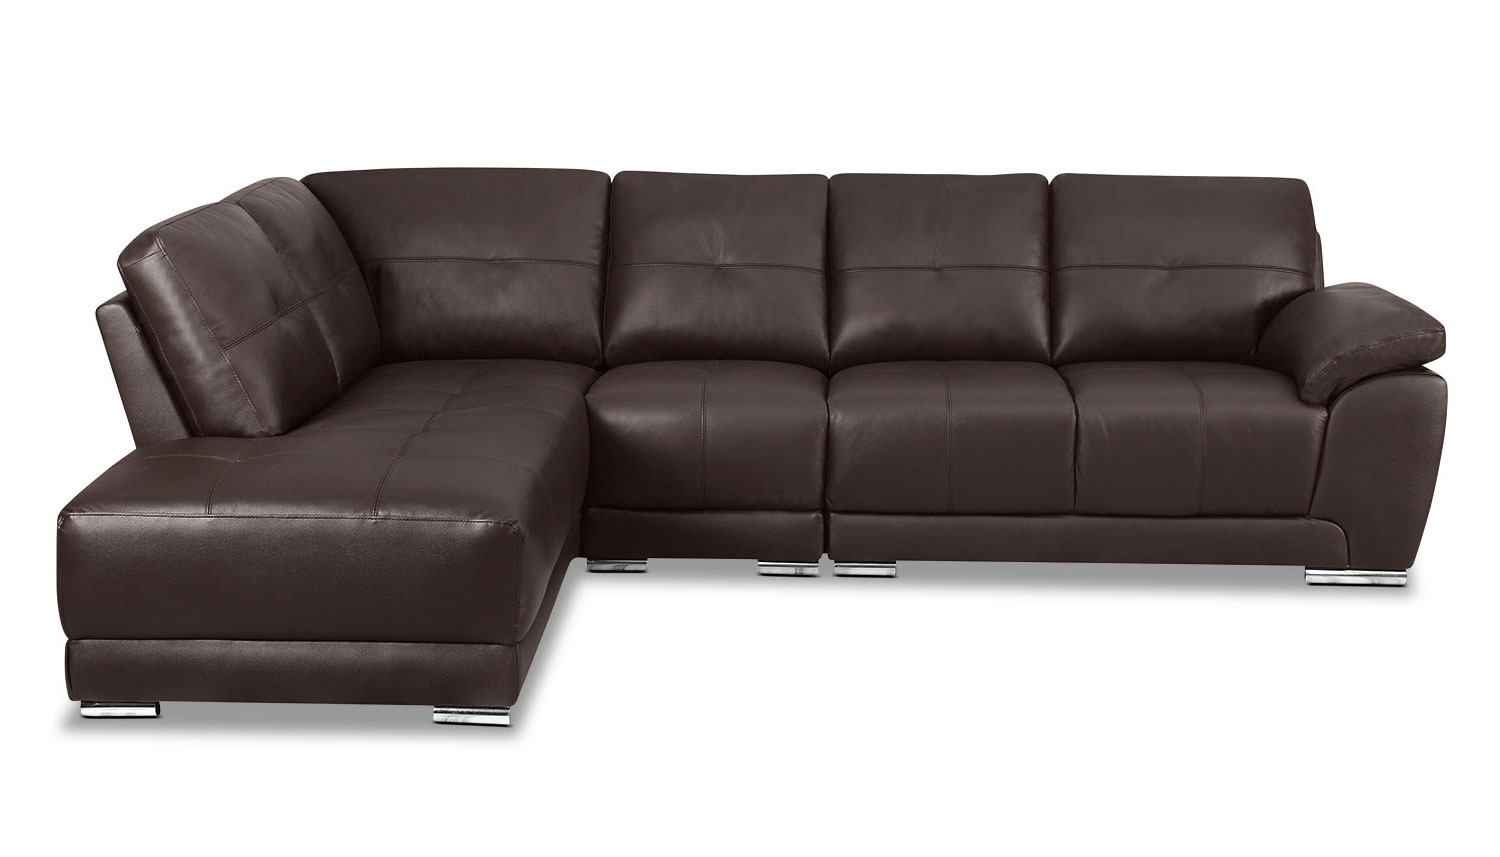 Living Room Furniture - Rylee 3-Piece Genuine Leather Left-Facing Sectional - Brown